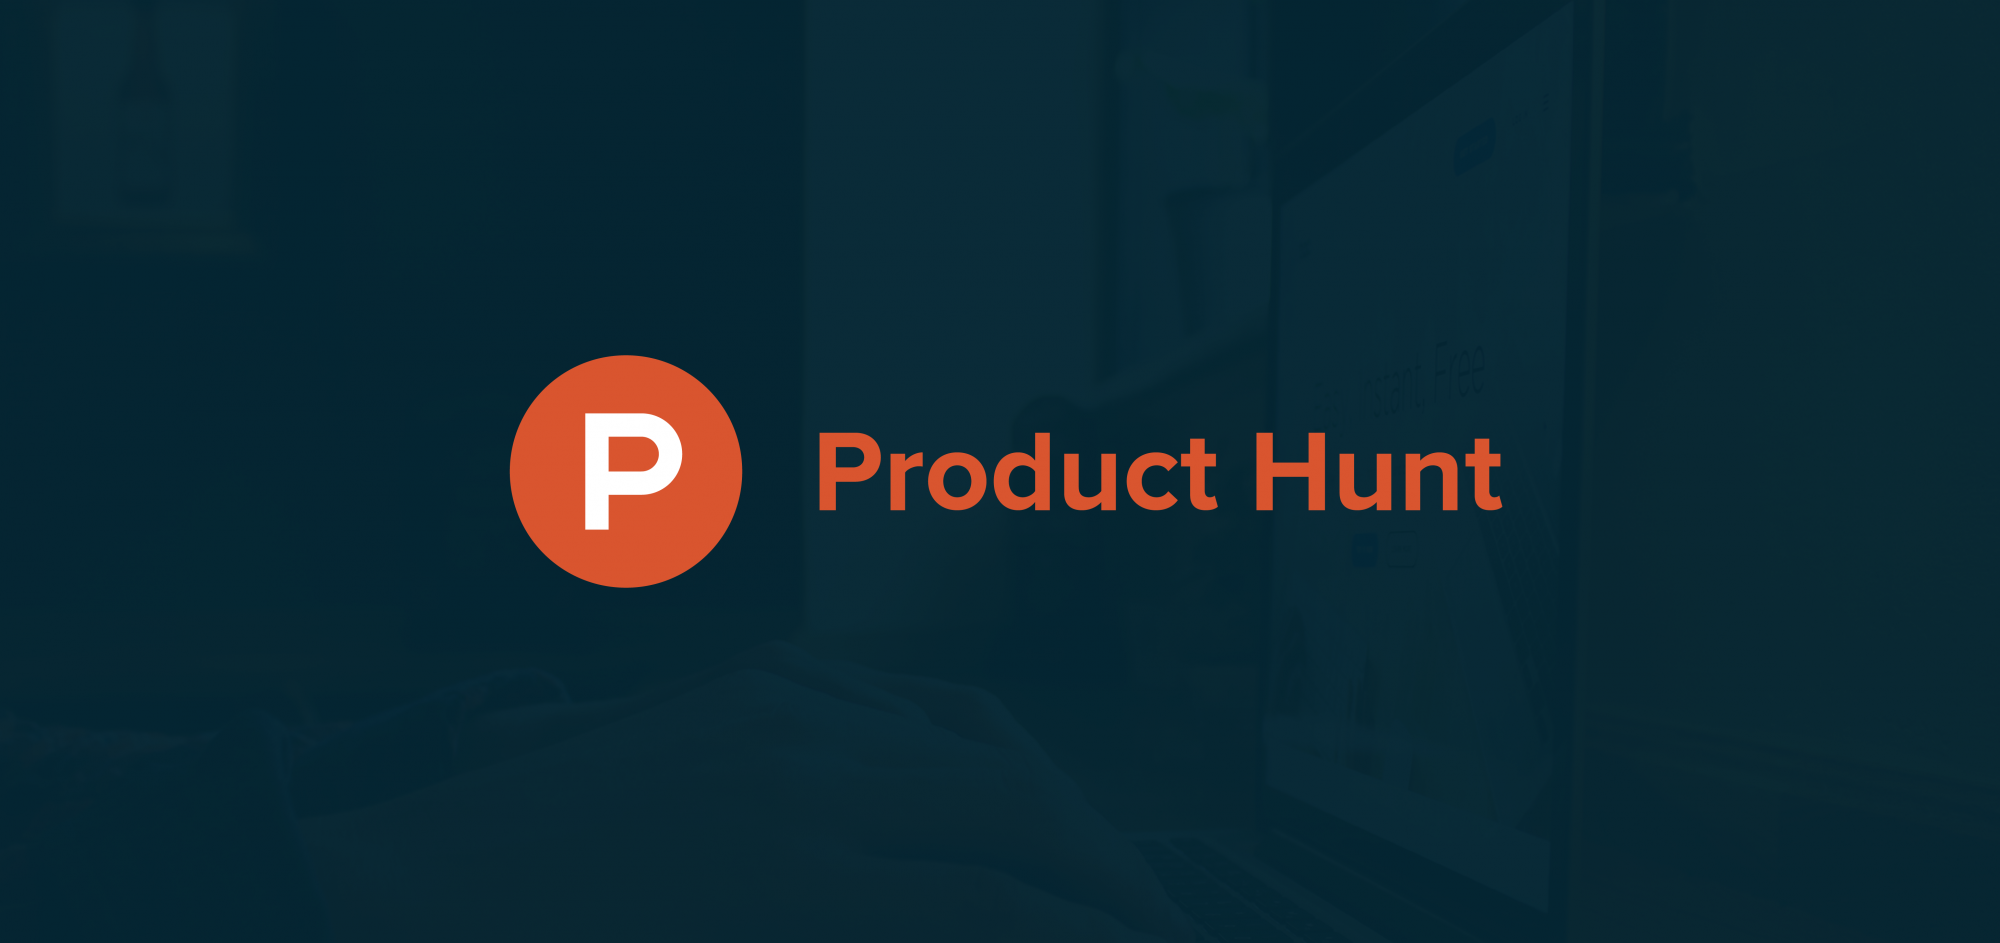 christmas came early for tap with a product hunt feature